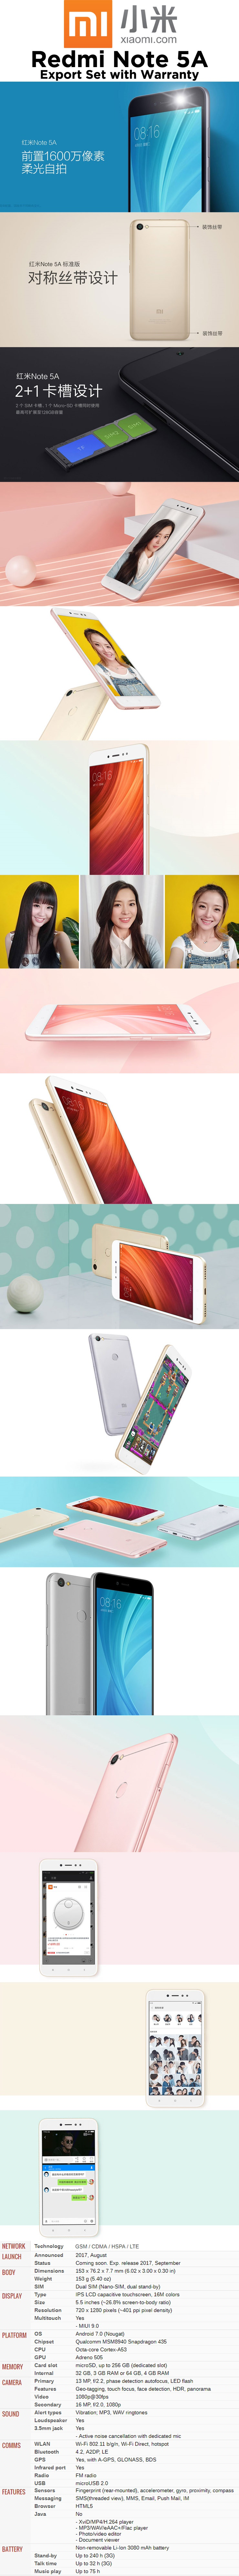 Buy Xiaomi Redmi Note 5a Smartphone 32gb Rom Deals For Only S399 Ram 2 16 Is Also Know As 5 Prime